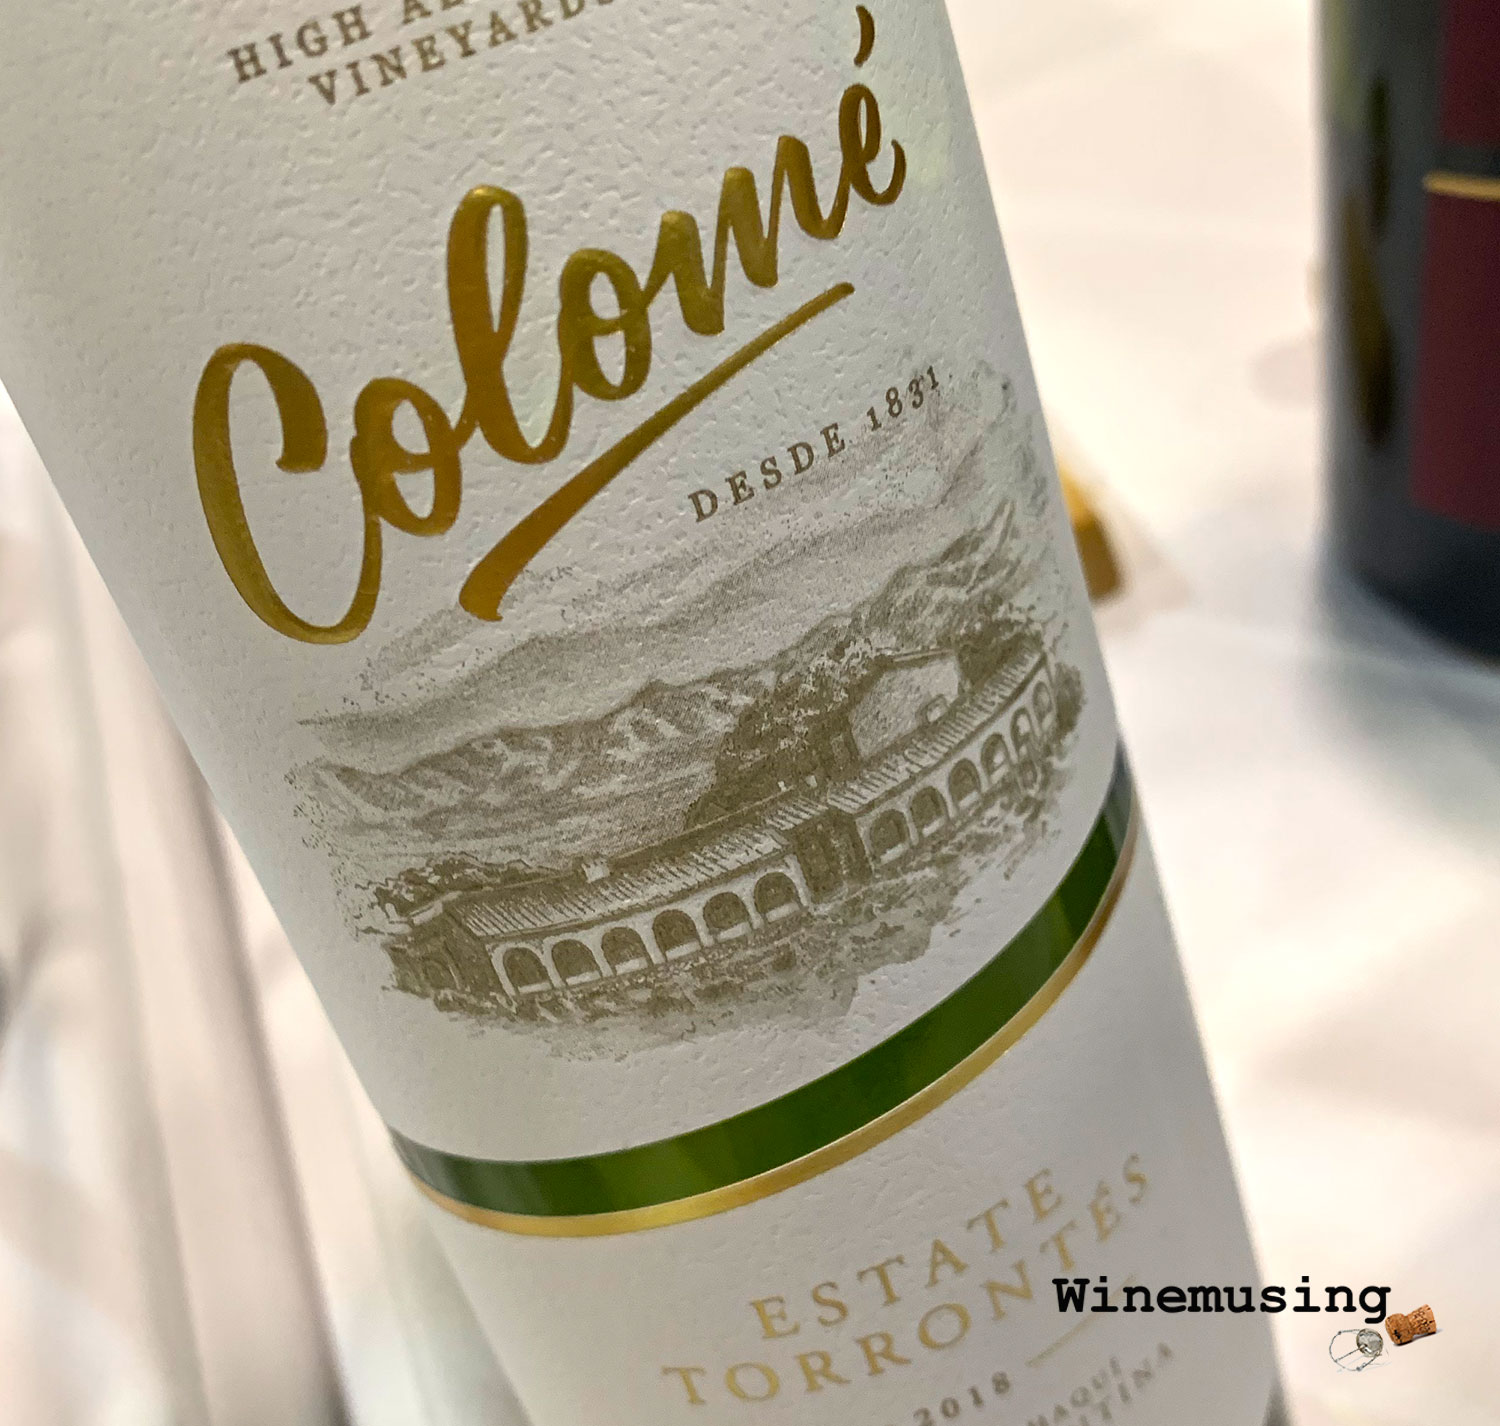 Bodega Colomé Estate Torrontes 2018